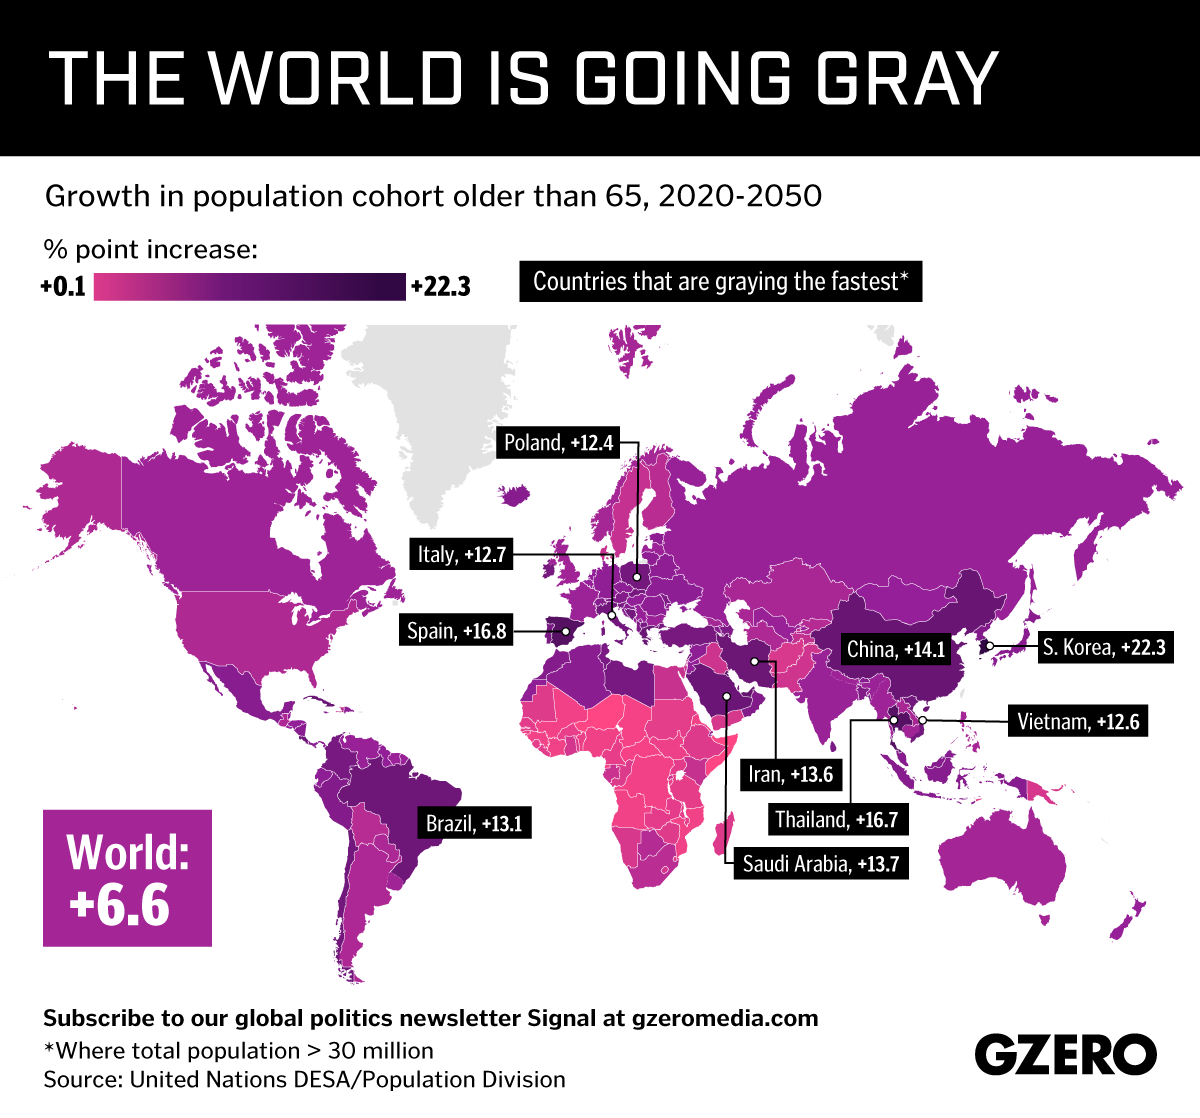 Graphic Truth: How Old Will the World Be in 2050?